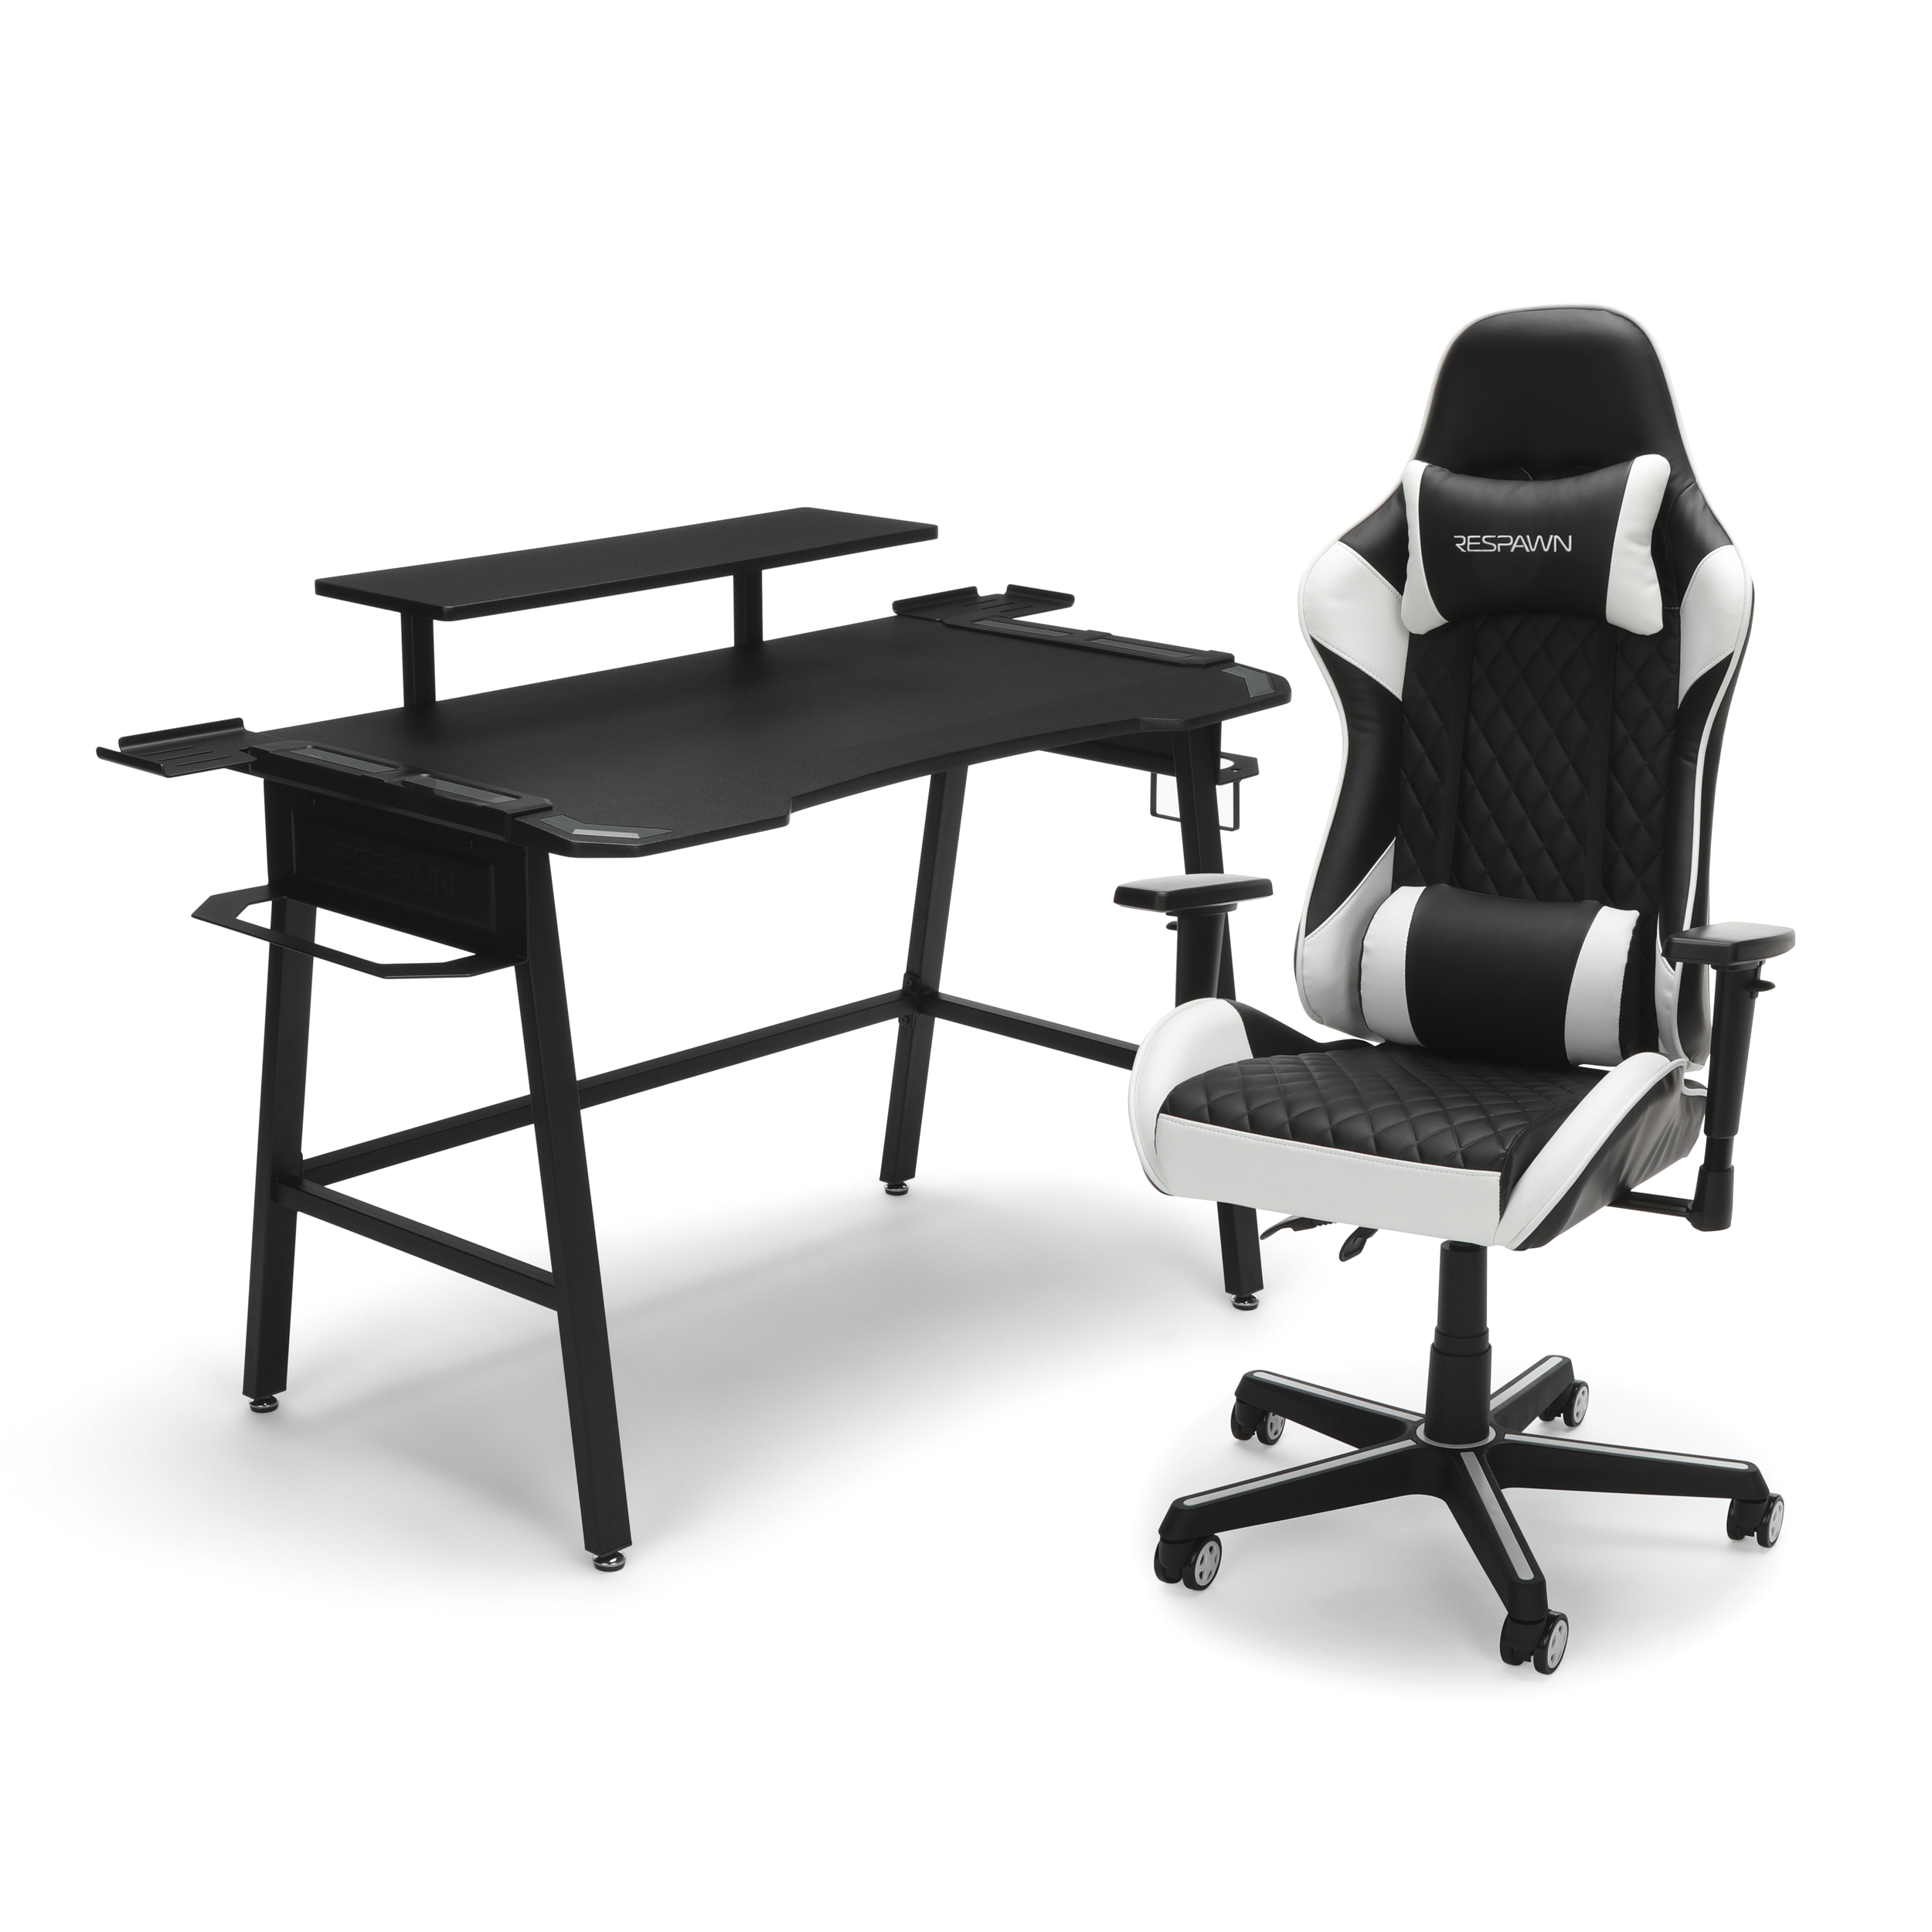 Respawn Gaming Chair Rsp 110 And Gaming Desk Rsp 1010 Bundle